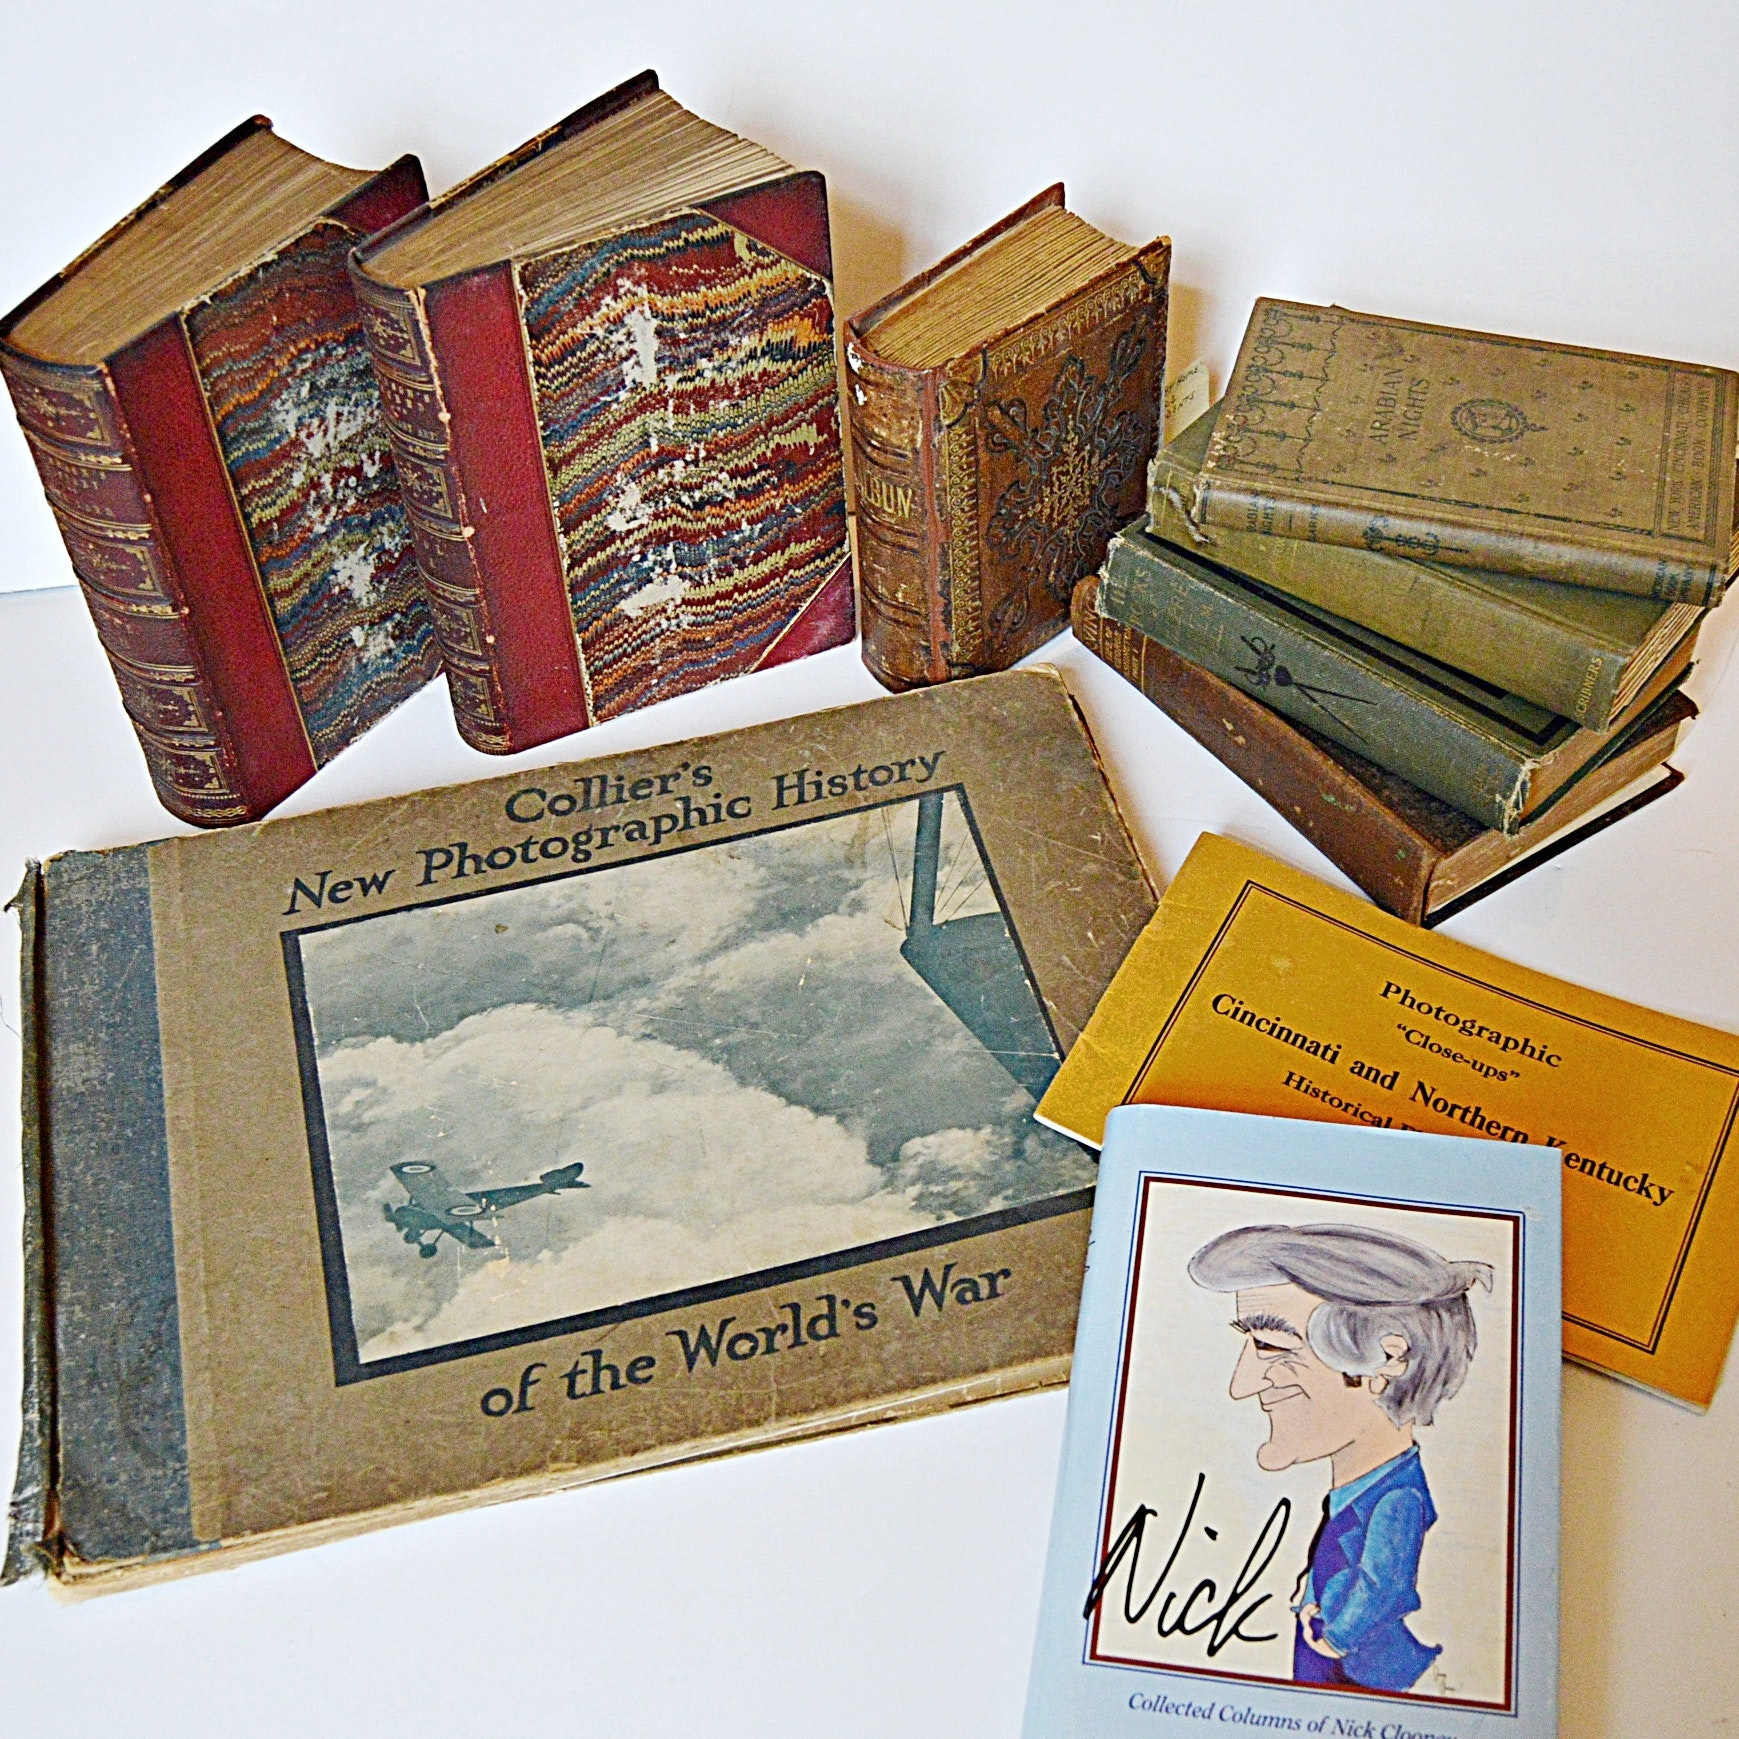 Antique and Vintage Books, with a Signed Nick Clooney